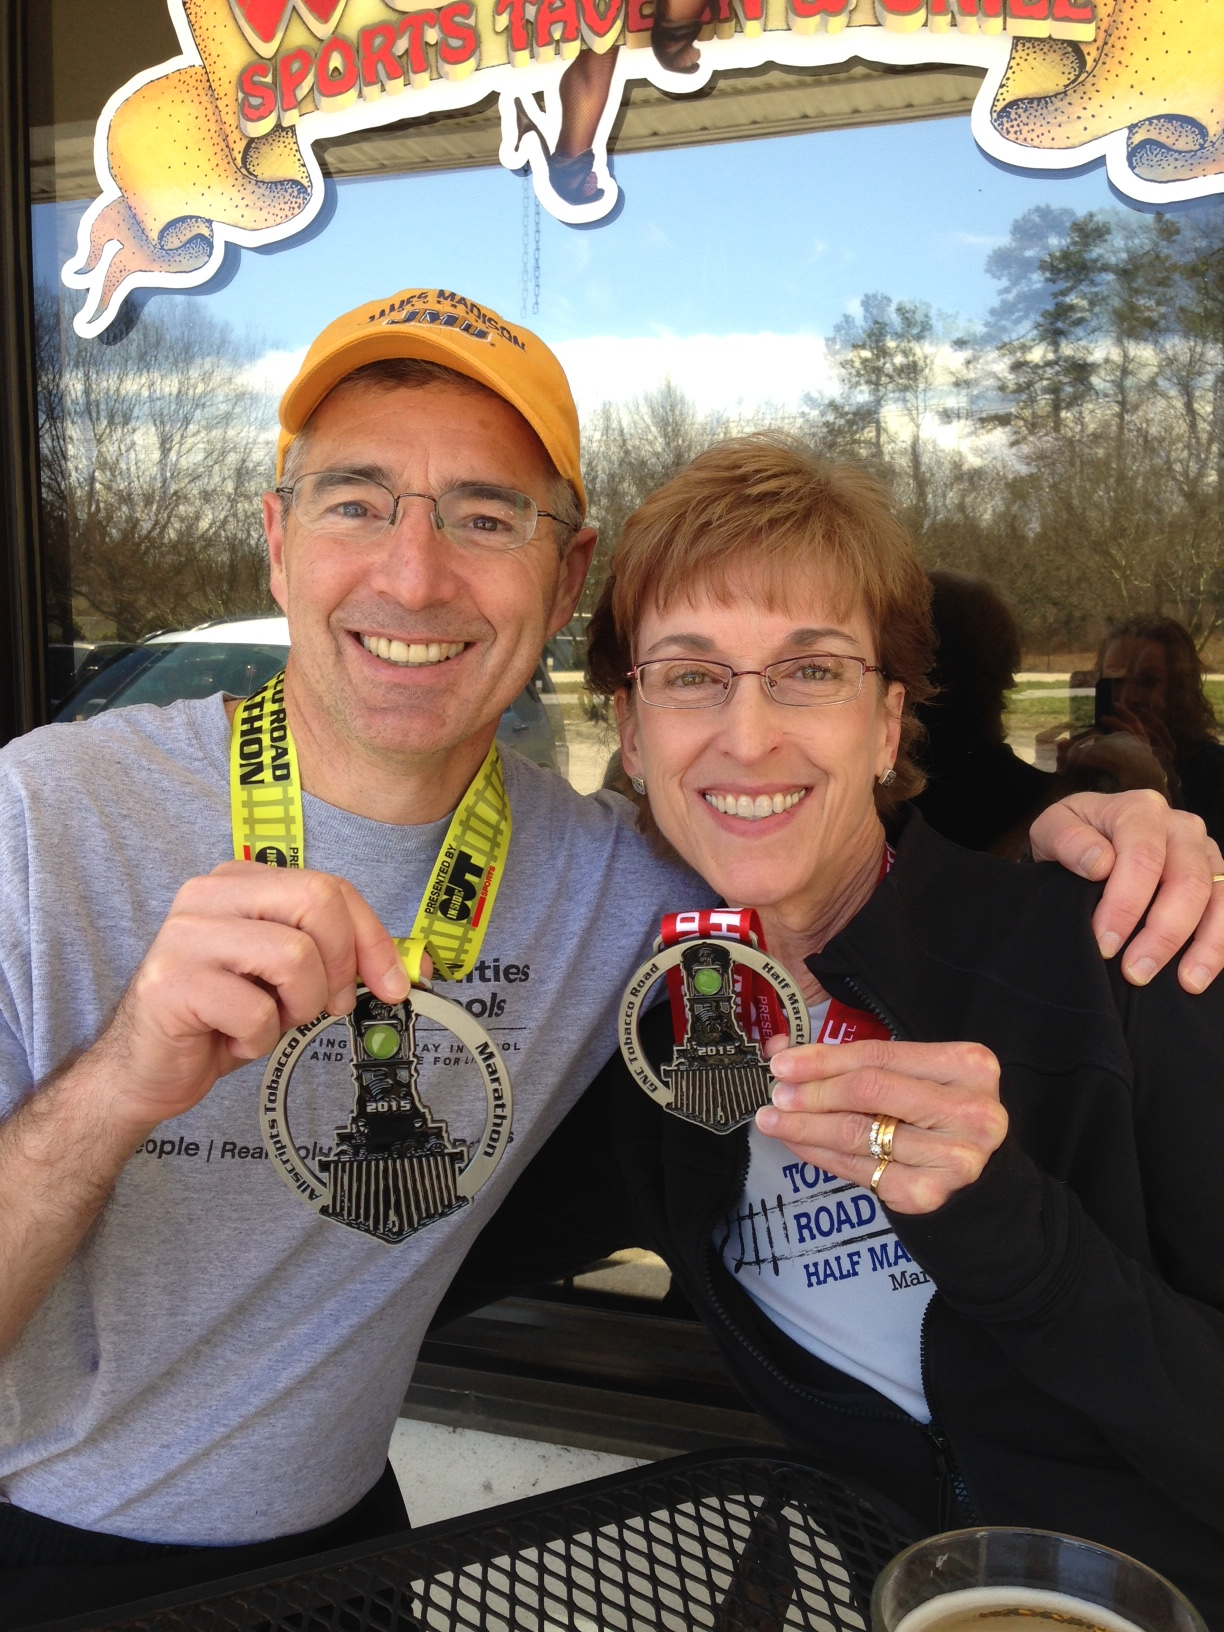 My awesome parents - Dad ran the full and Mom ran the half!  I feel very blessed to have such an active family.